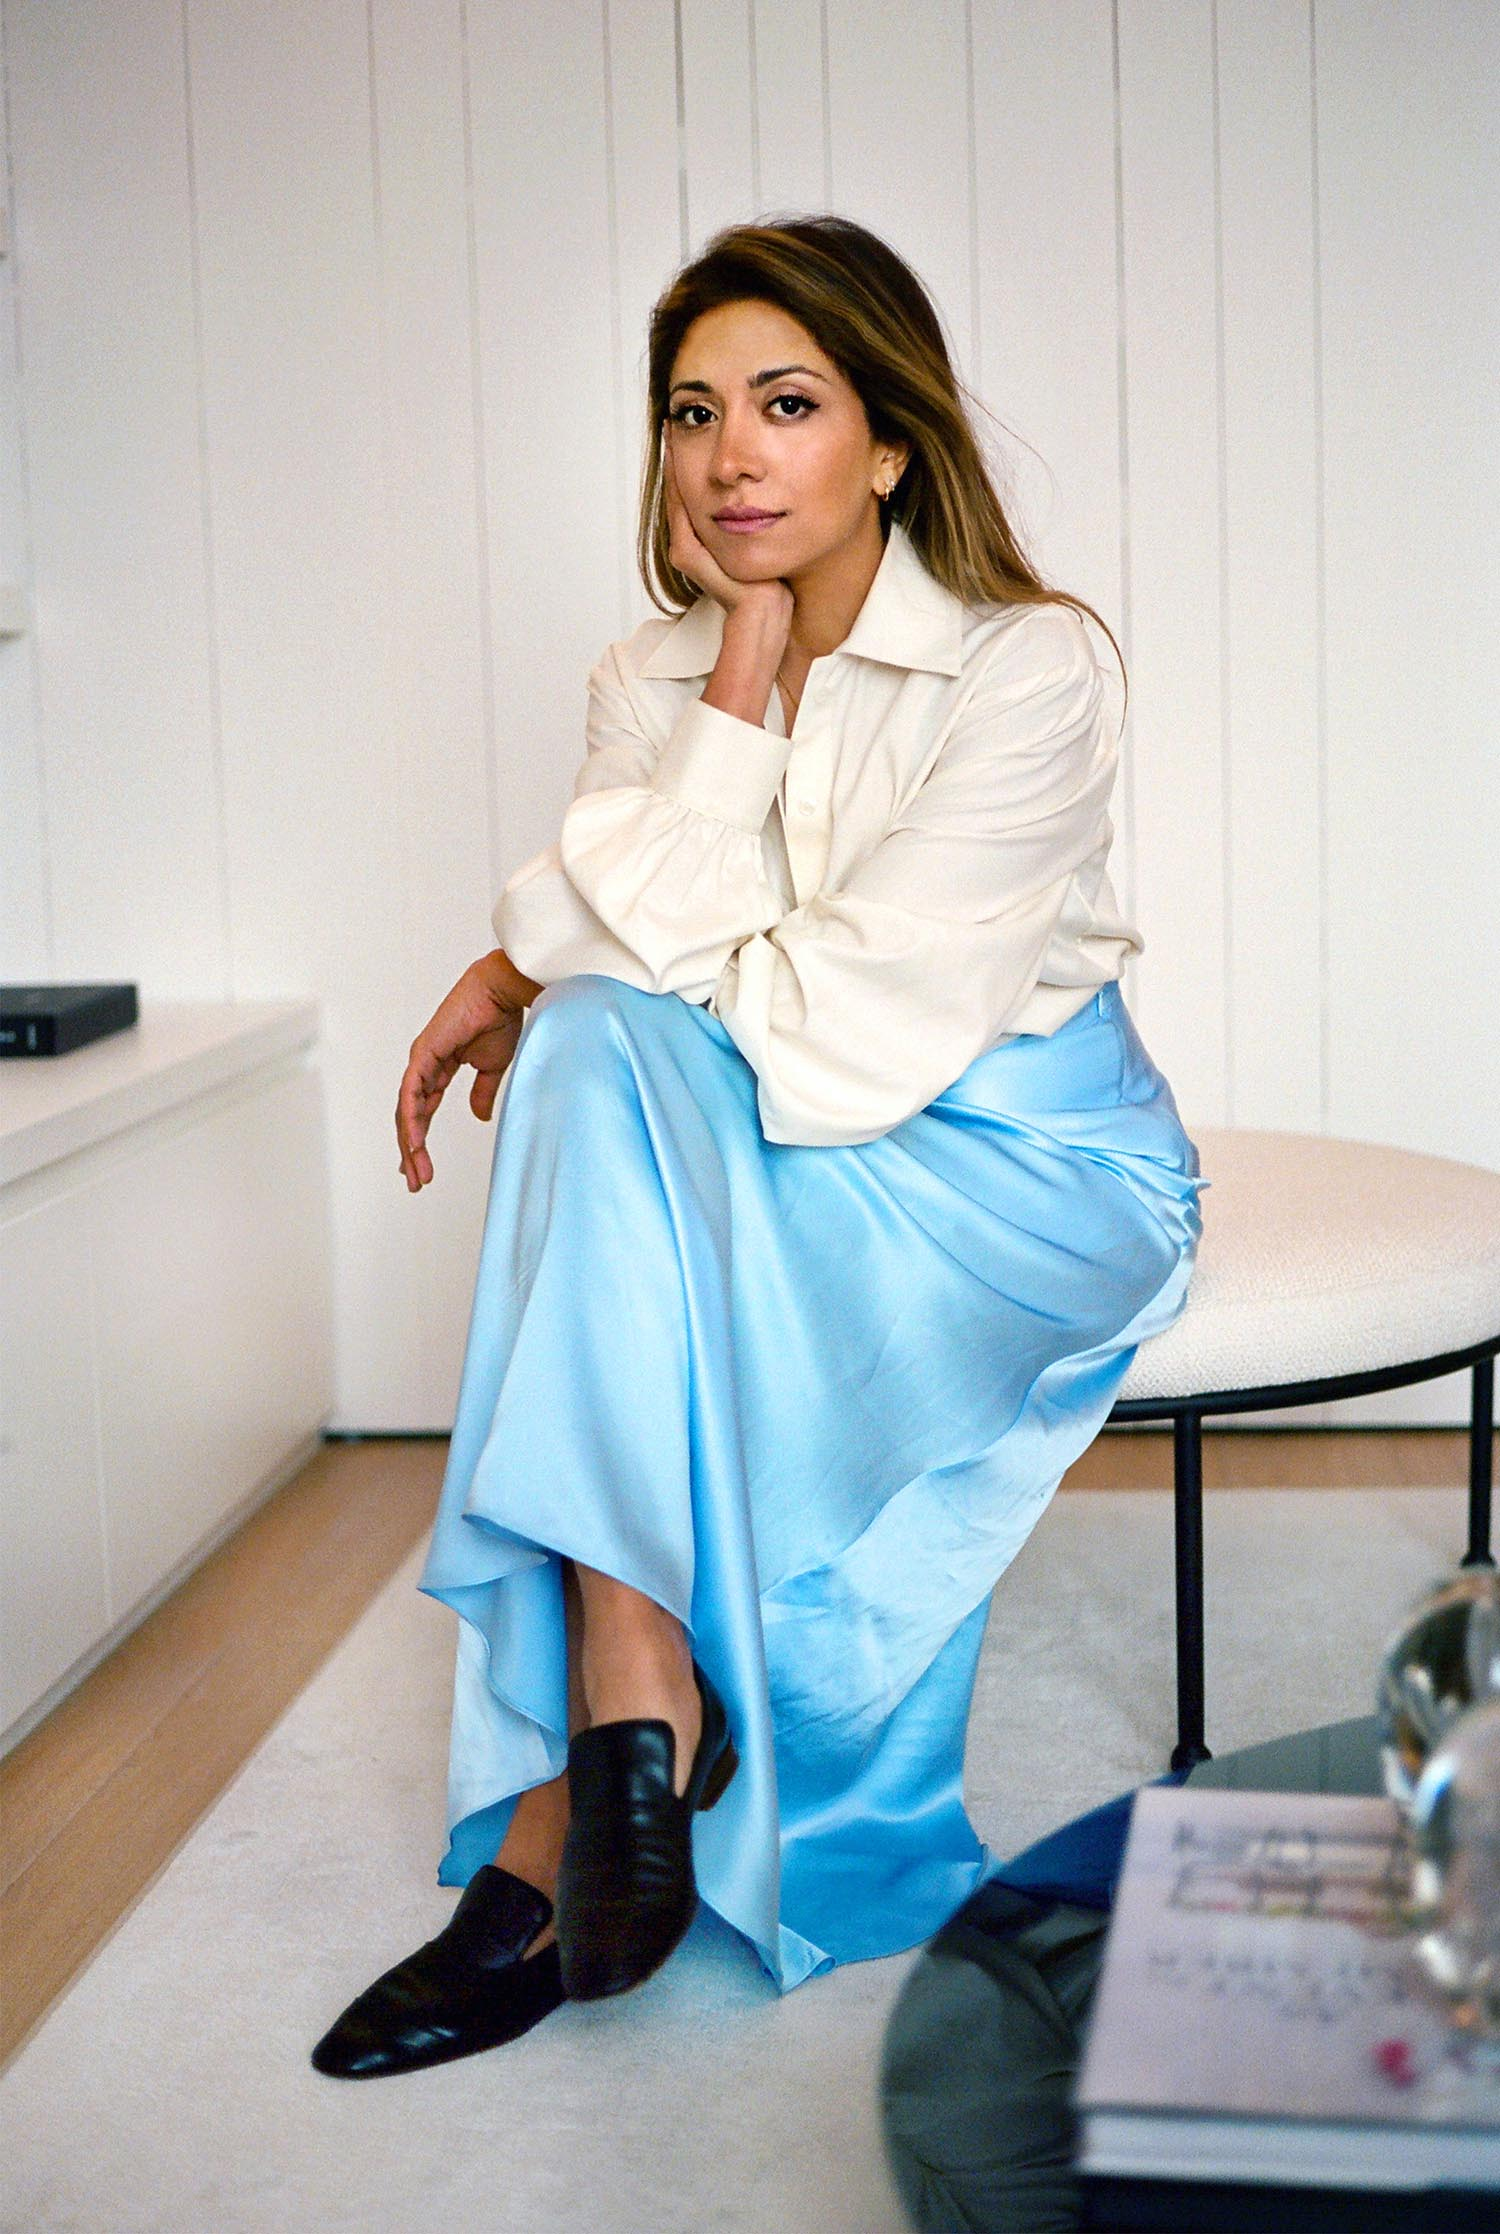 Nina Sarin Arias on the artists that inspire her collections, from Roe Ethridge to Lee Krasner